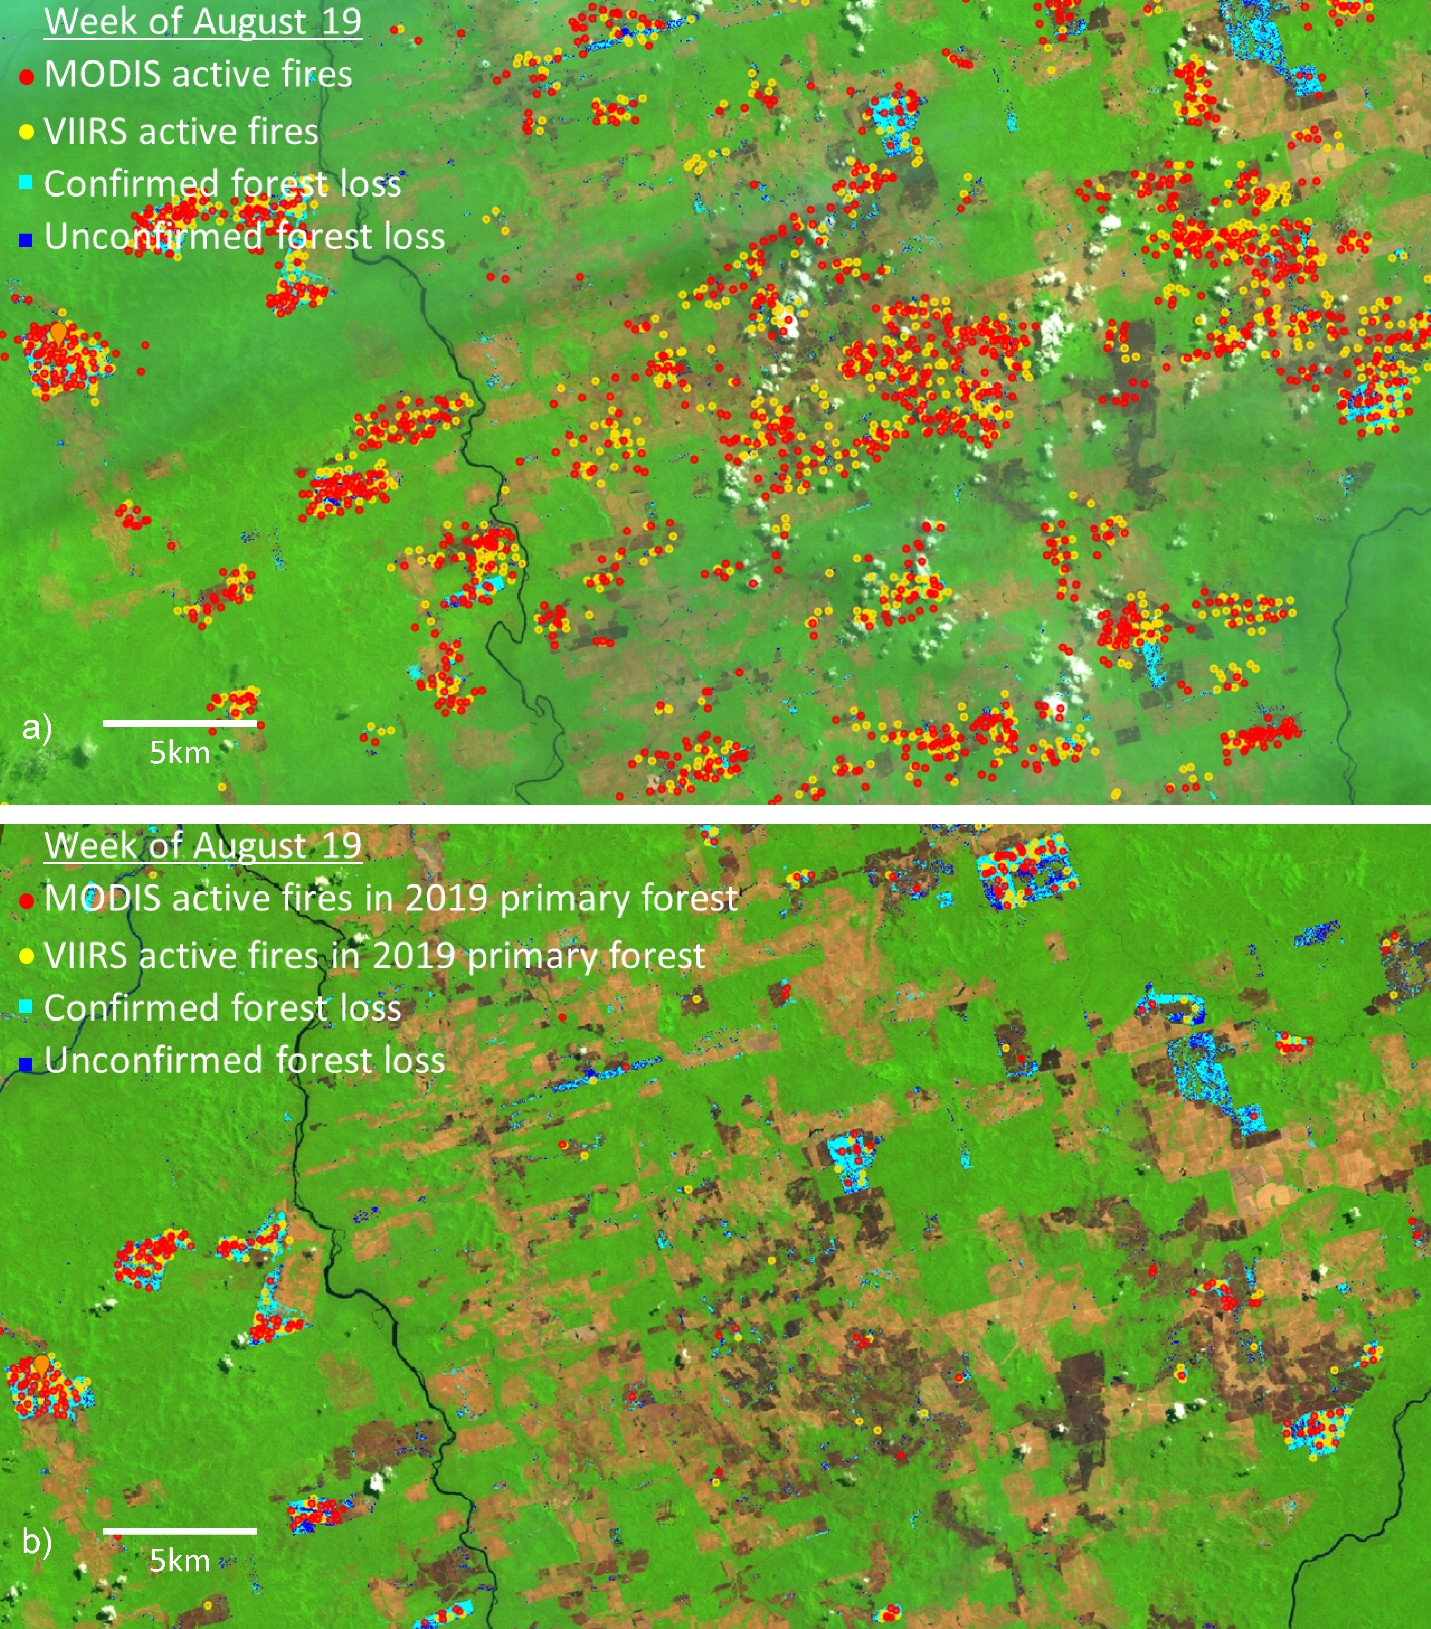 Figure 4. Depiction of deforestation frontier from Amazonas State, Brazil, north of the town of Novo Progresso; a) shows all fires - note that most fires are on already cleared land; b) shows fires on recently cleared primary forest.